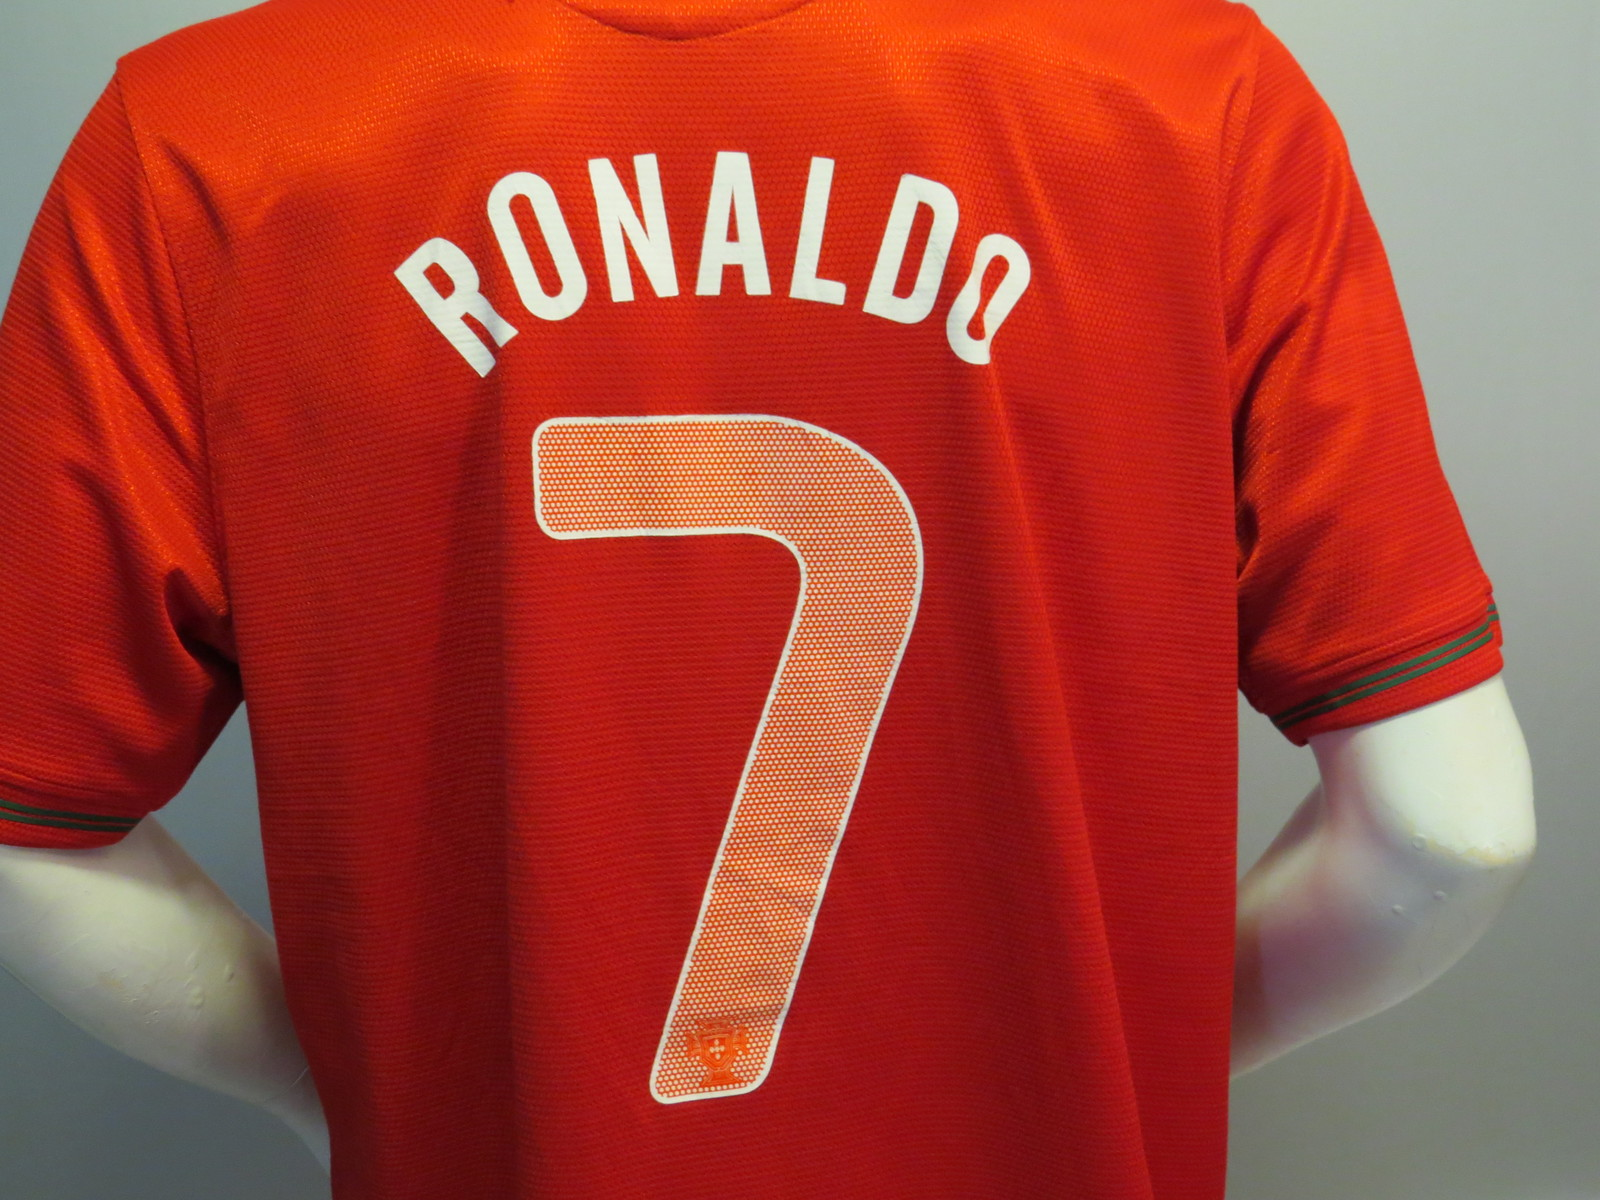 Team Portugal Jersey by Nike - 2014 Home Jersey #7 Ronaldo - Men's Extra Large